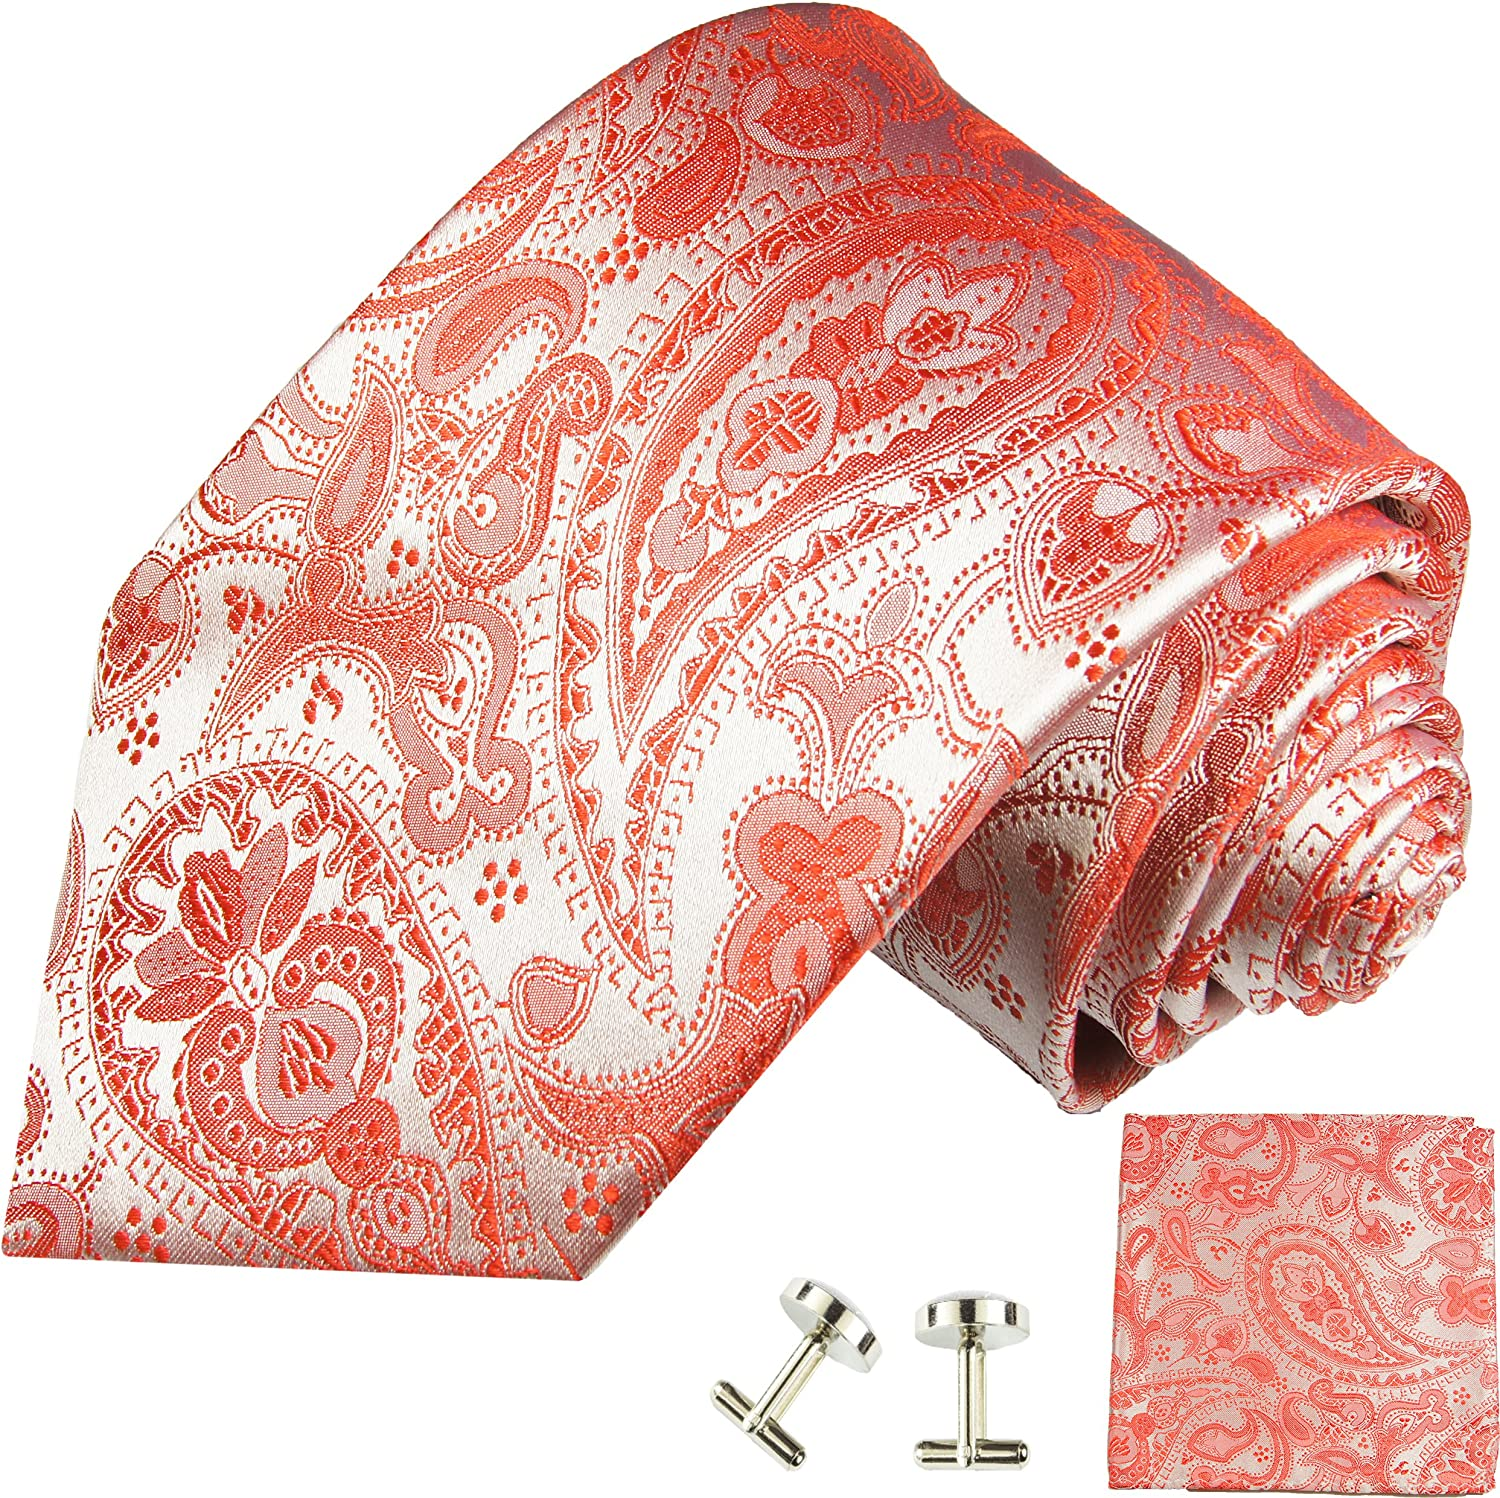 Red Paisley Silk Tie with Pocket Square and Cufflinks